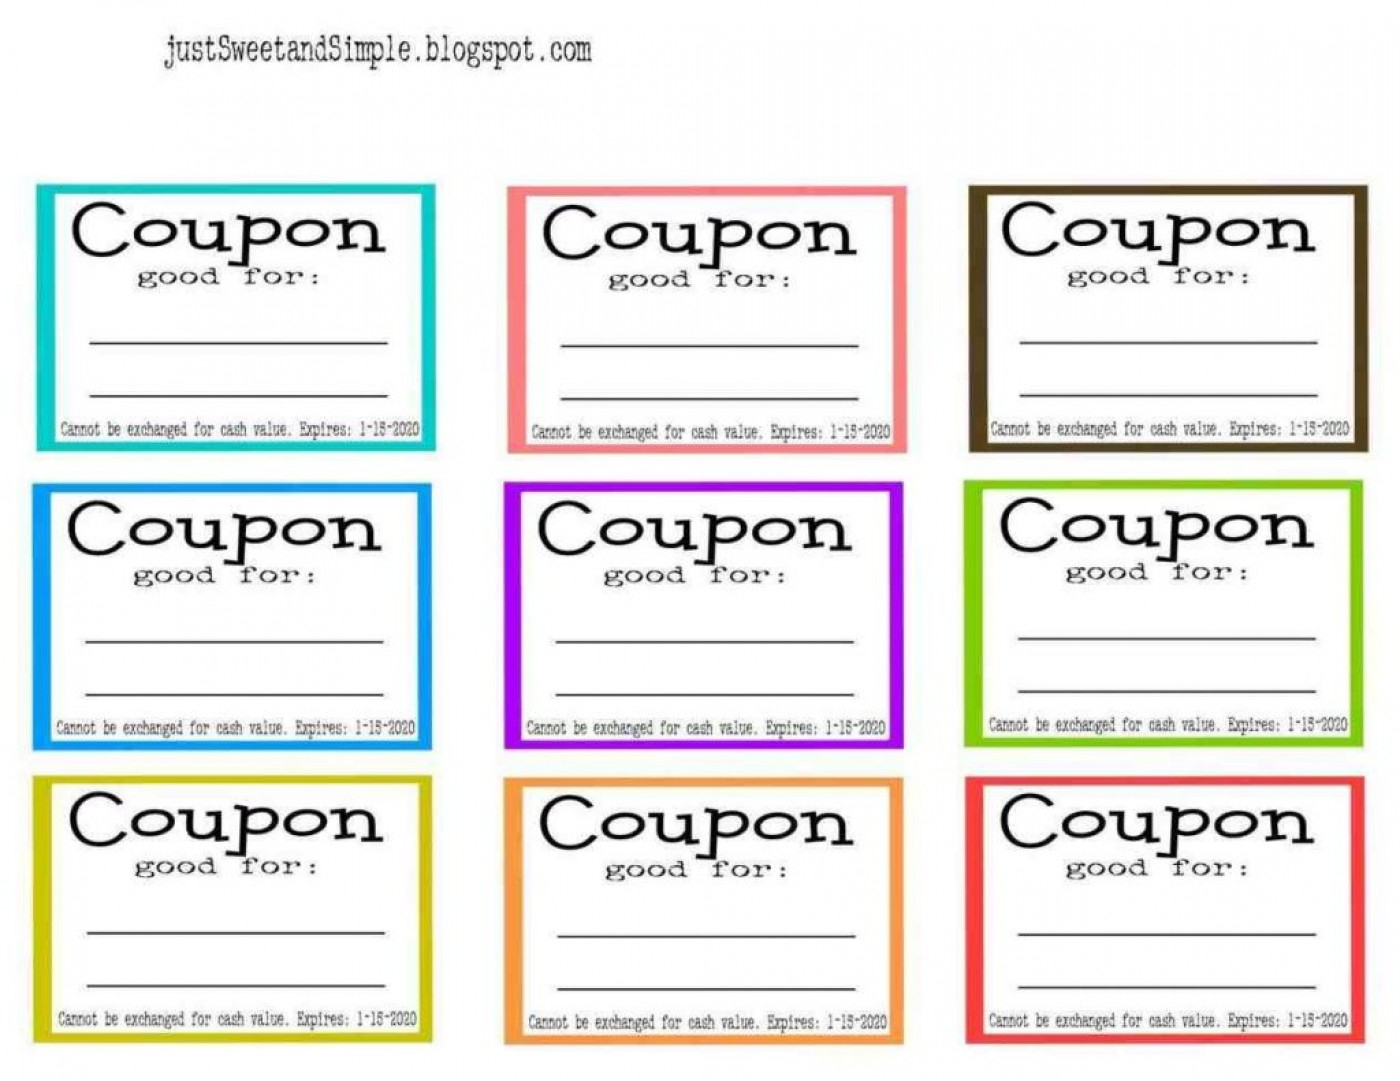 010 Make Your Own Coupon Template Free Printable Templates Brochure - Make Your Own Printable Coupons For Free